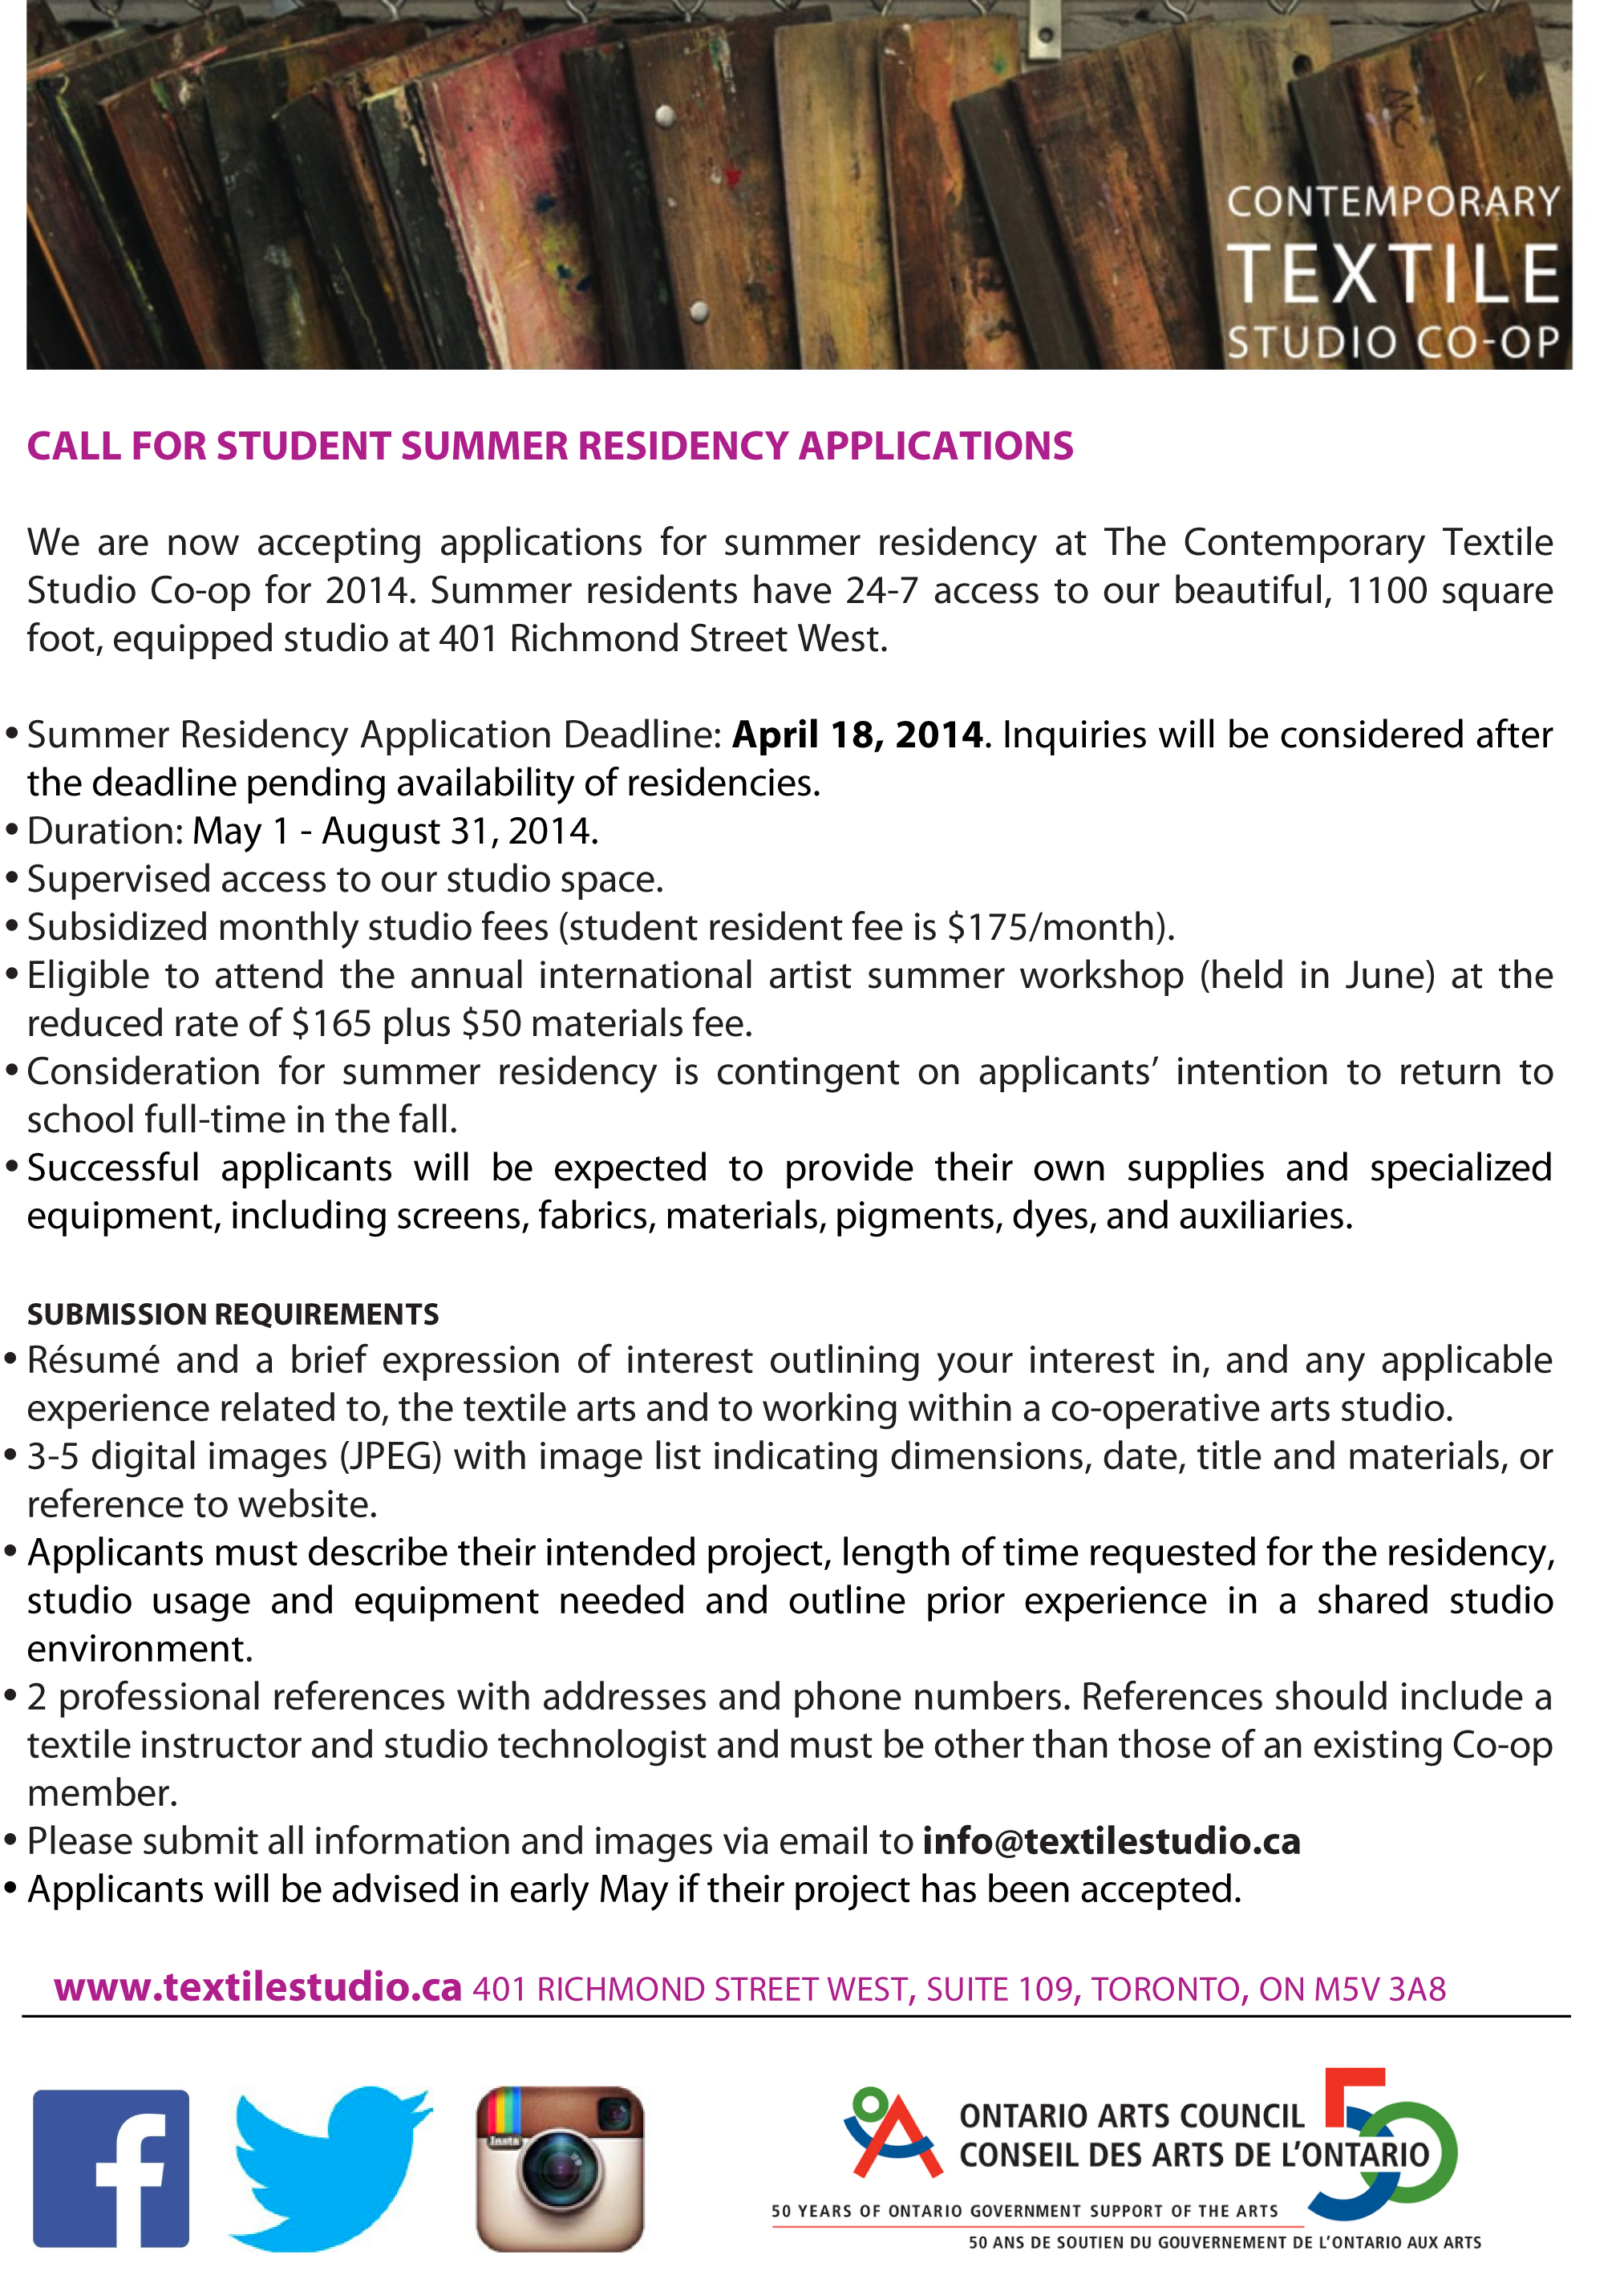 Microsoft Word - CALL FOR STUDENT SUMMER RESIDENCY 2014.doc